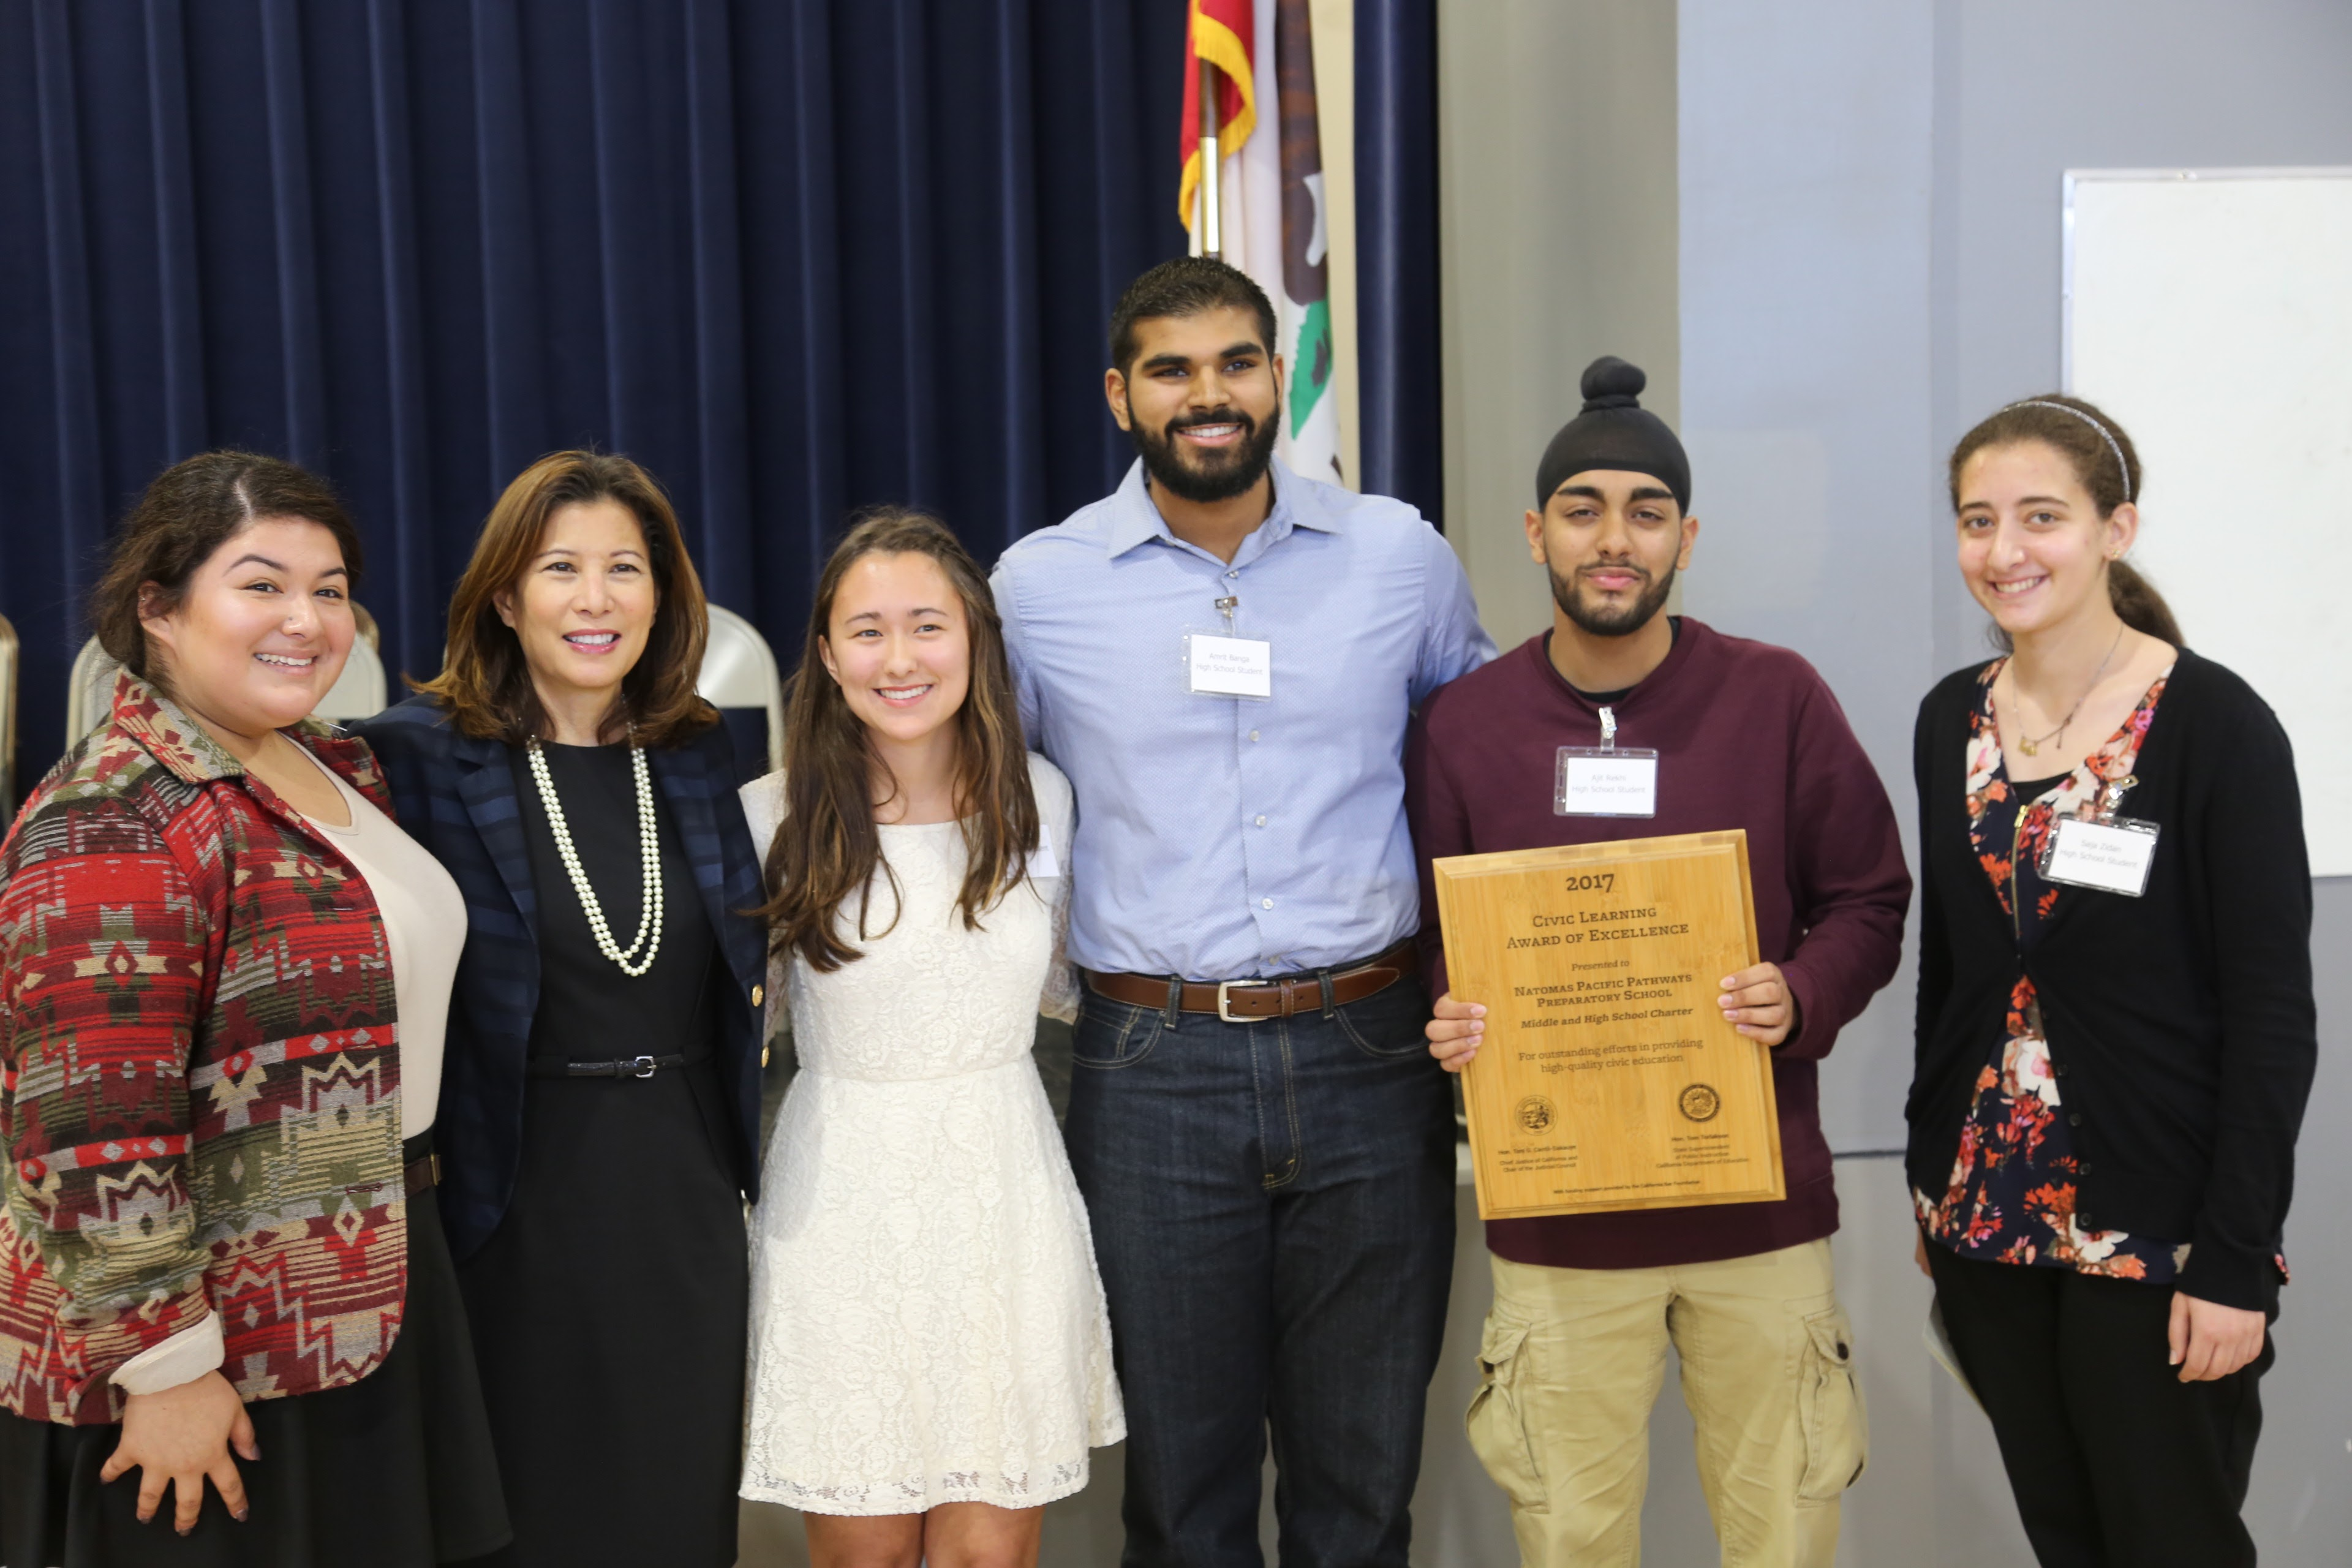 Civic Learning Award of Excellence 2017